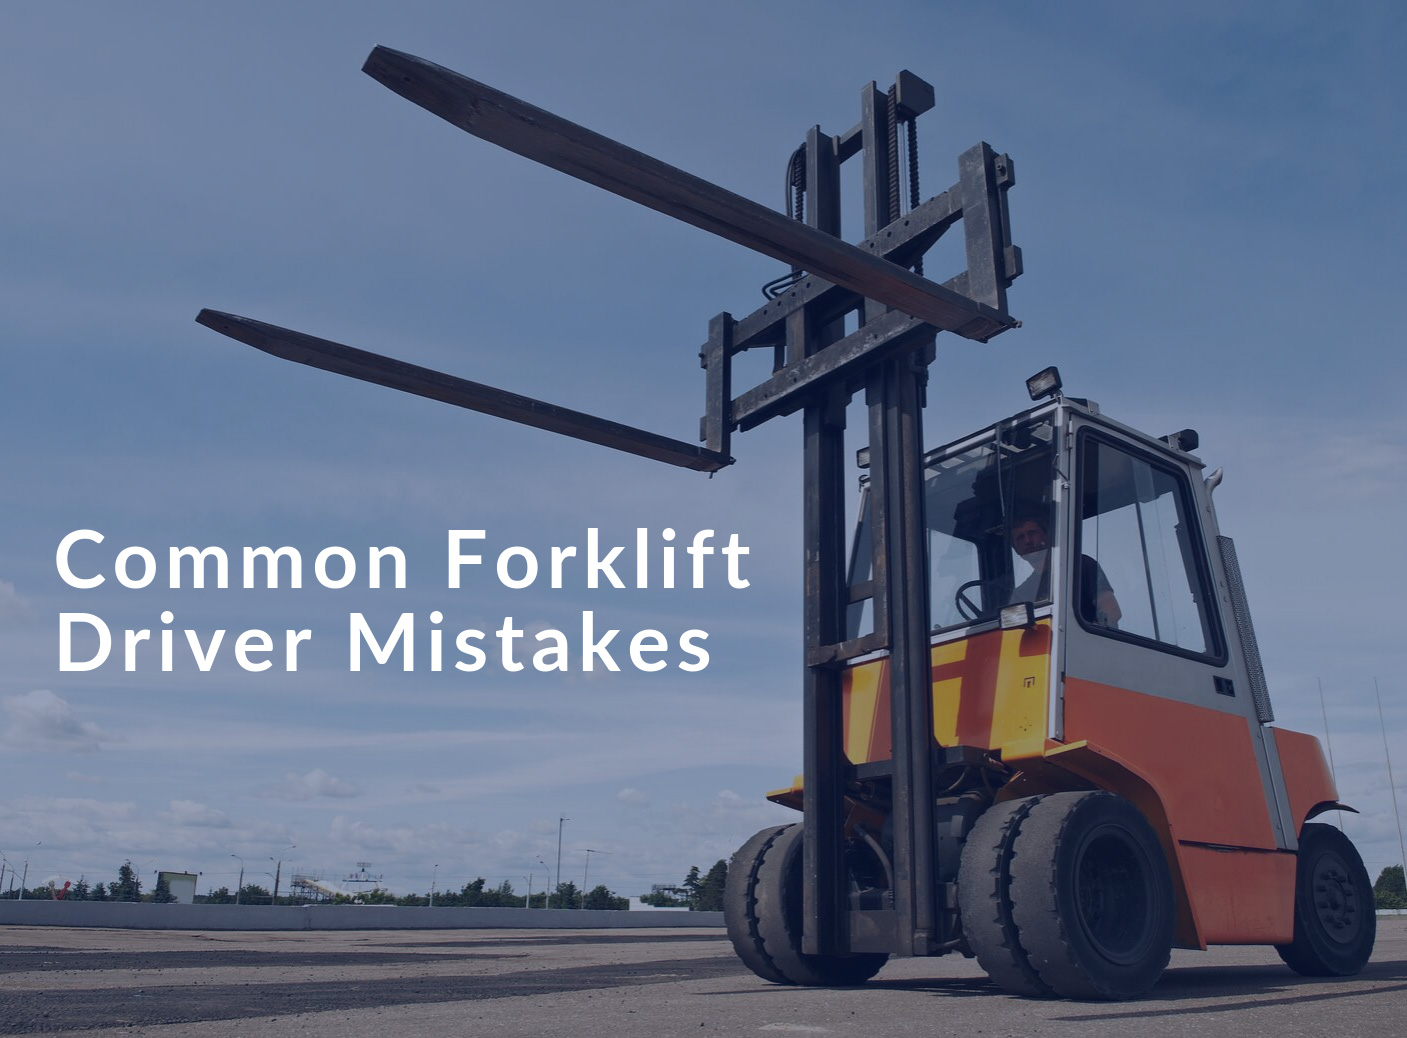 Common Forklift Driver Mistakes